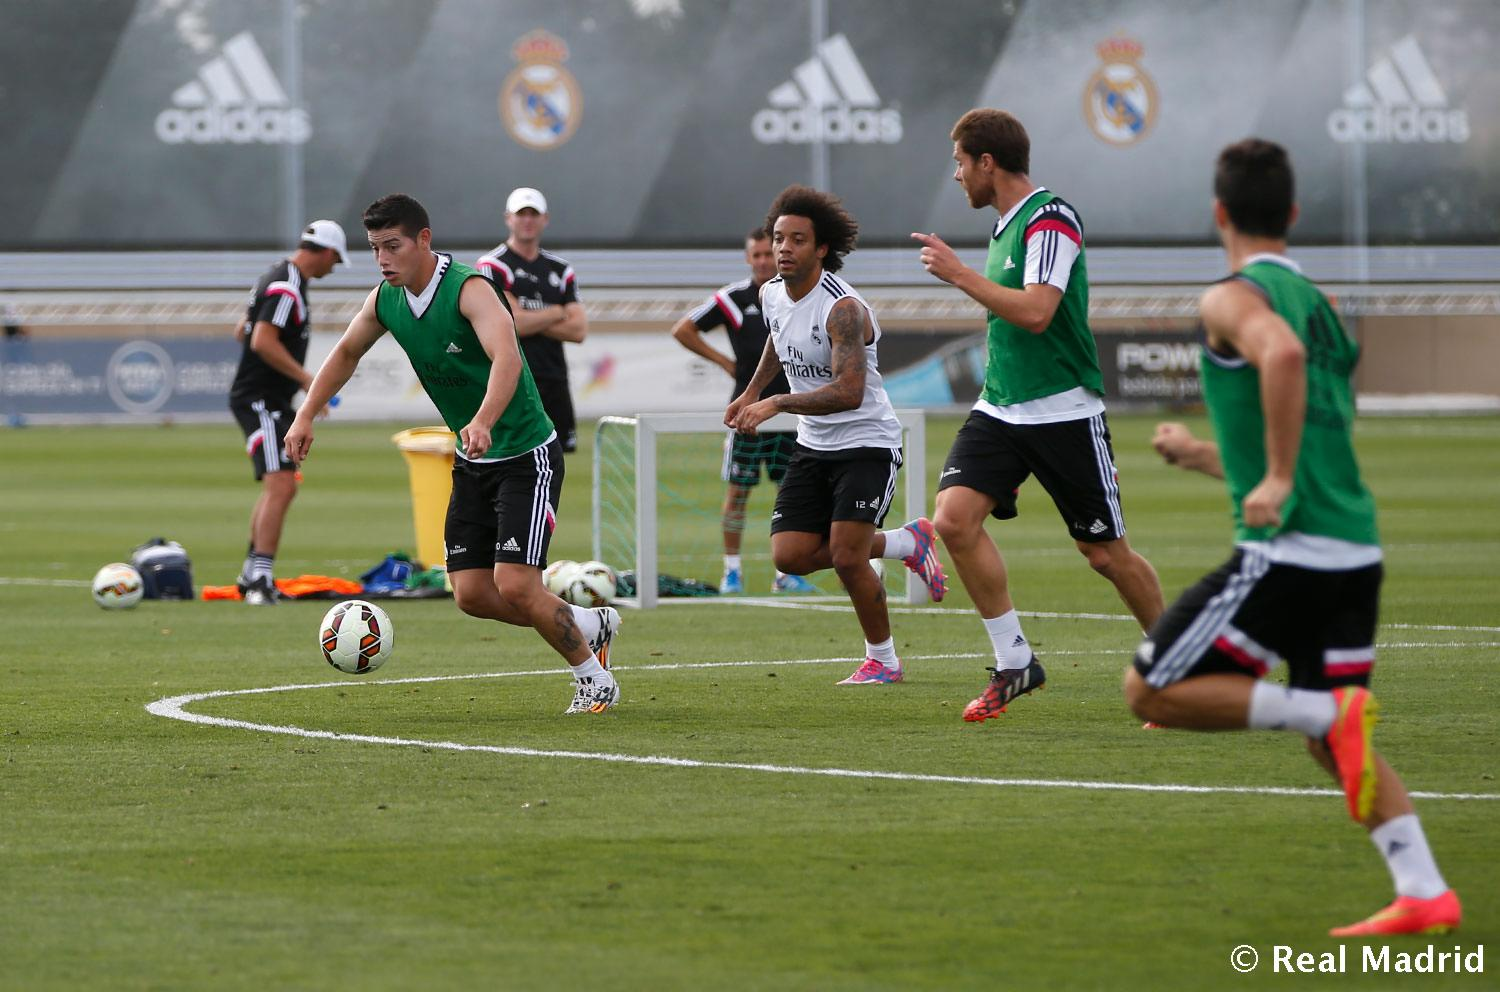 Real Madrid - Entrenamiento del Real Madrid - 27-08-2014